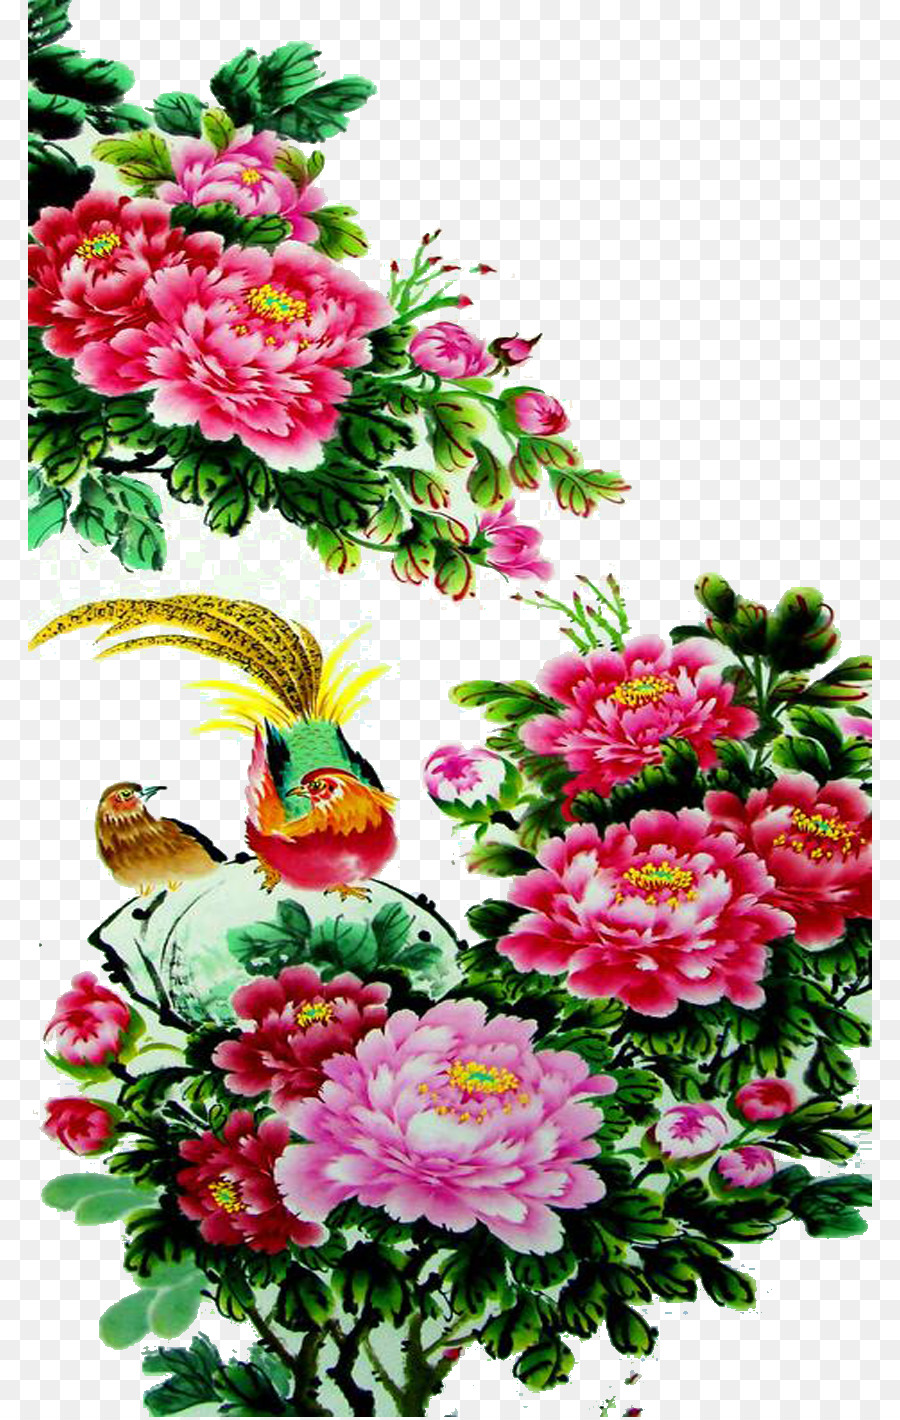 Golden Pheasant Floral Design Bird And Flower Painting Chinese